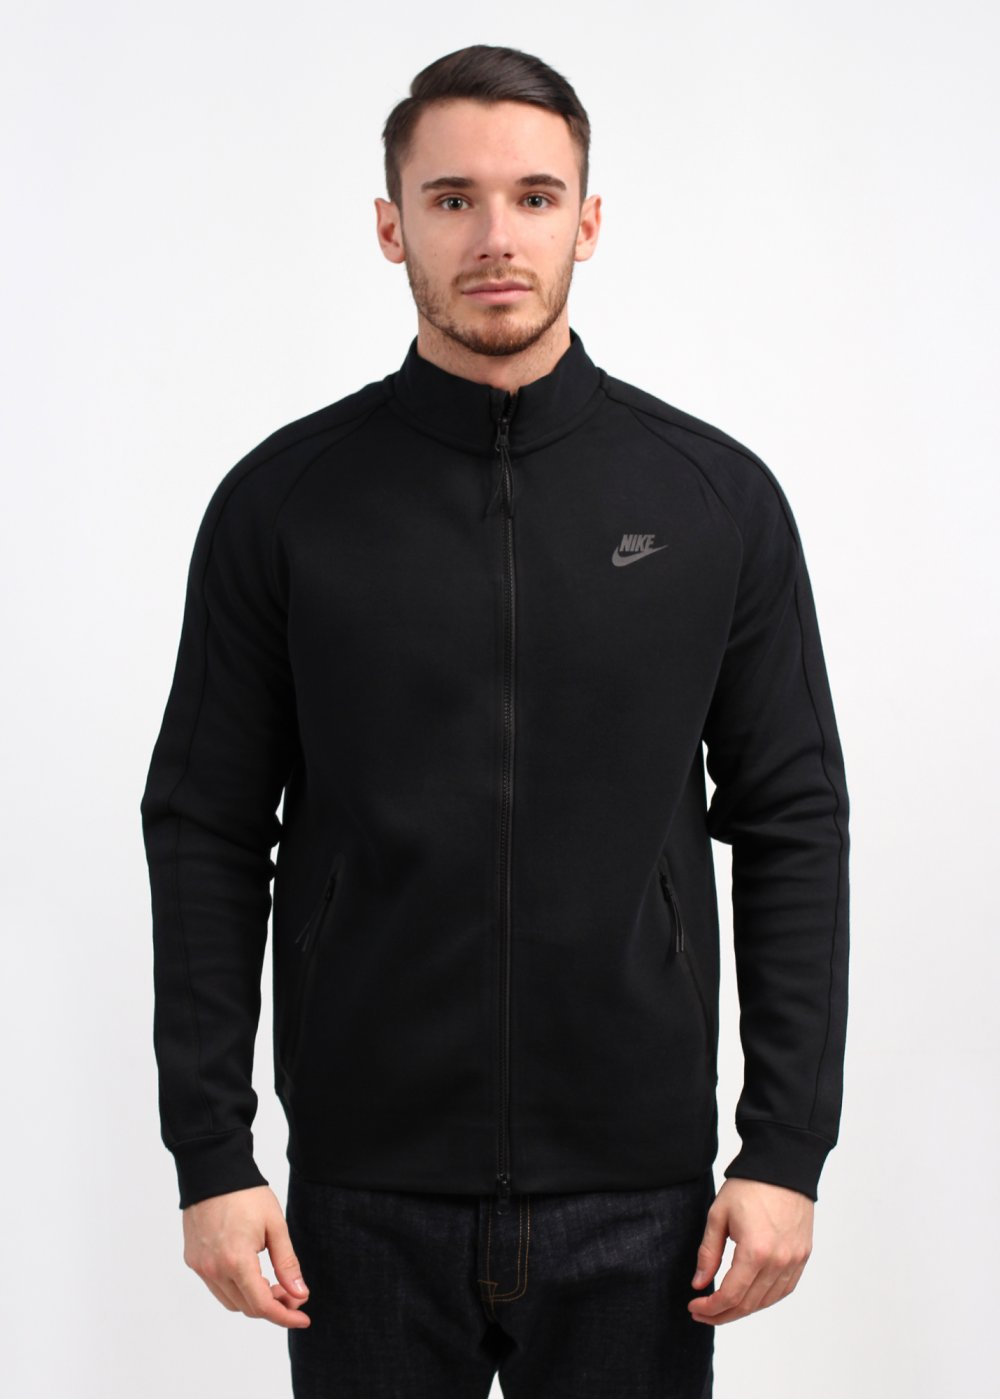 Nike Tech Fleece N98 Track Jacket - Black